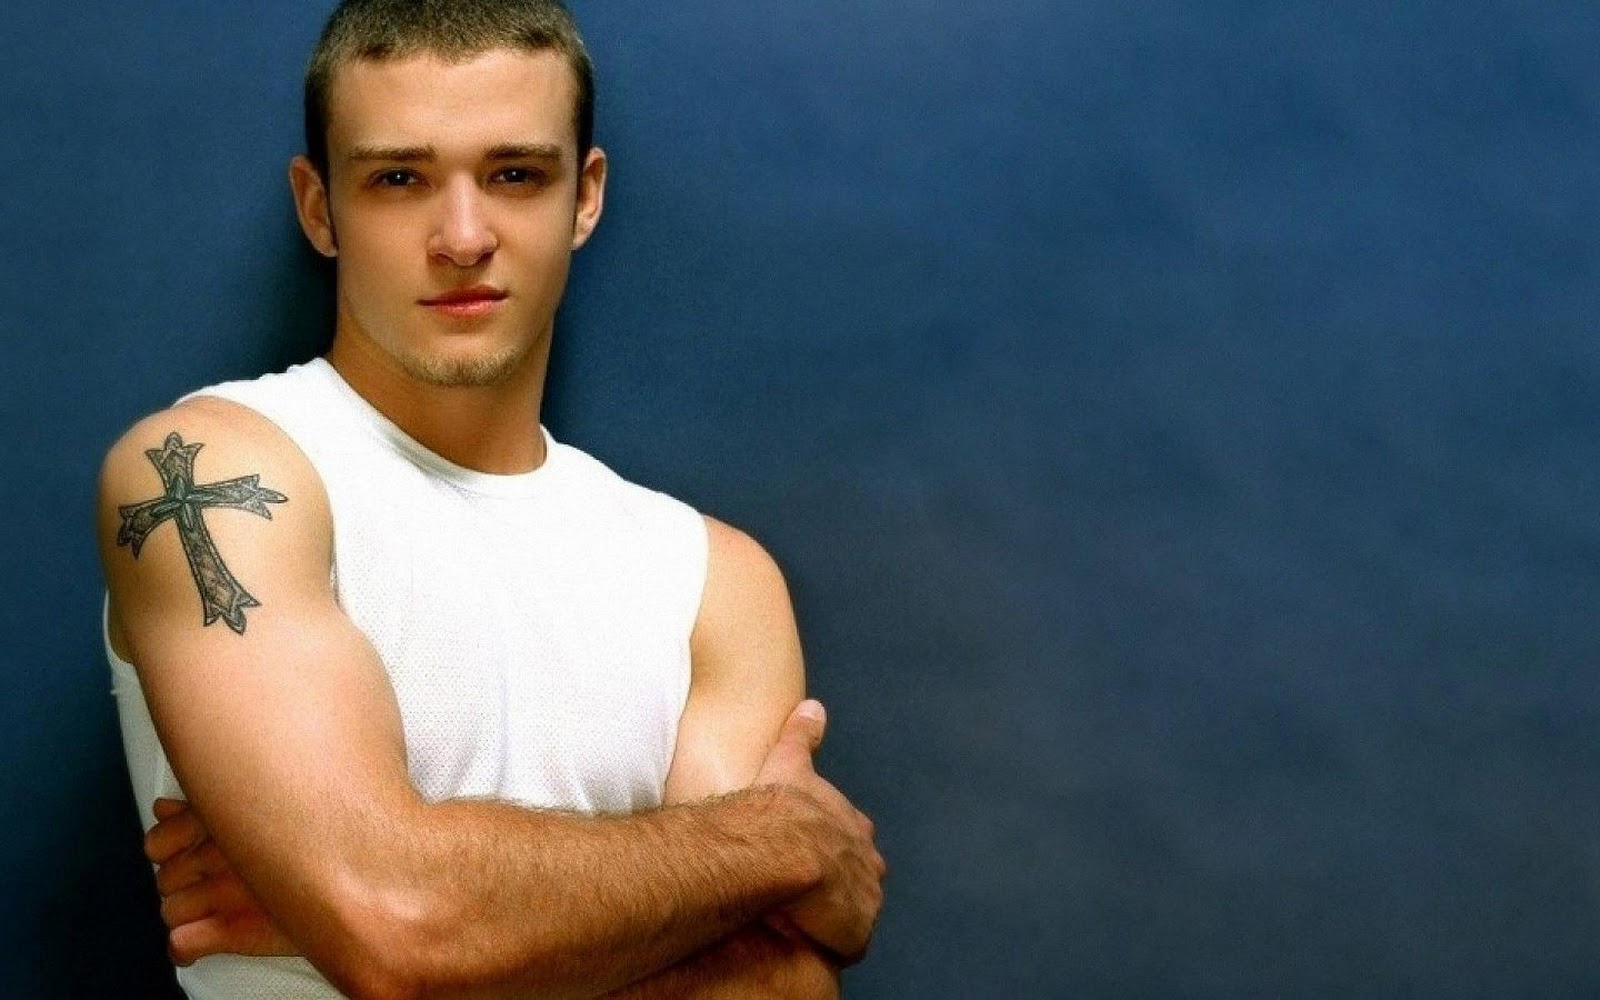 justin-timberlake-tattoos-removed.jpg